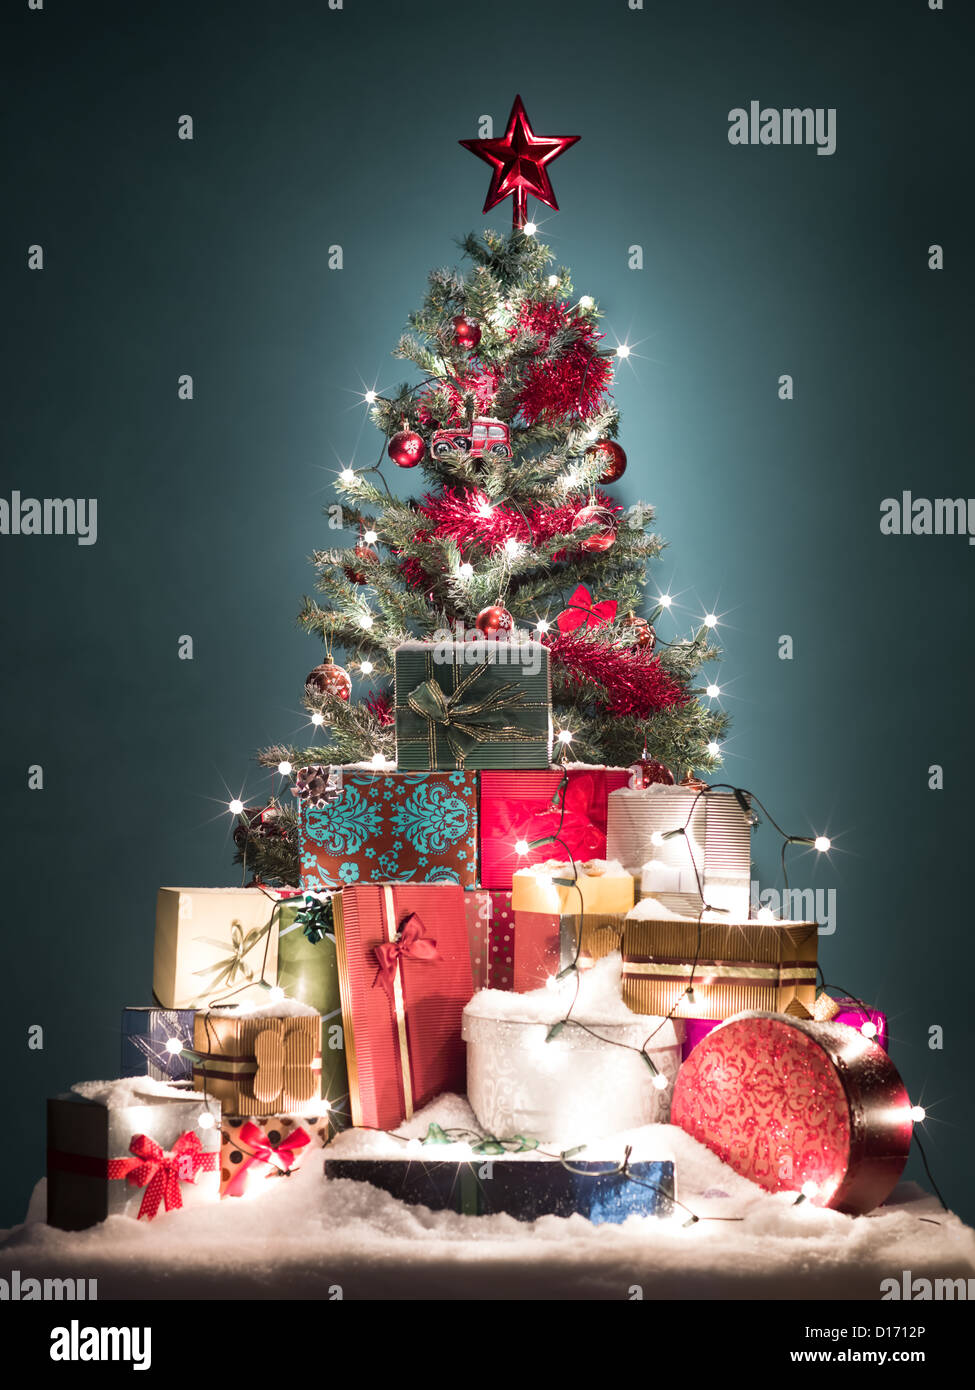 green christmas tree with beatiful red decorations surrounded by a heap of gift boxes covered with - Green Christmas Tree With Blue Decorations